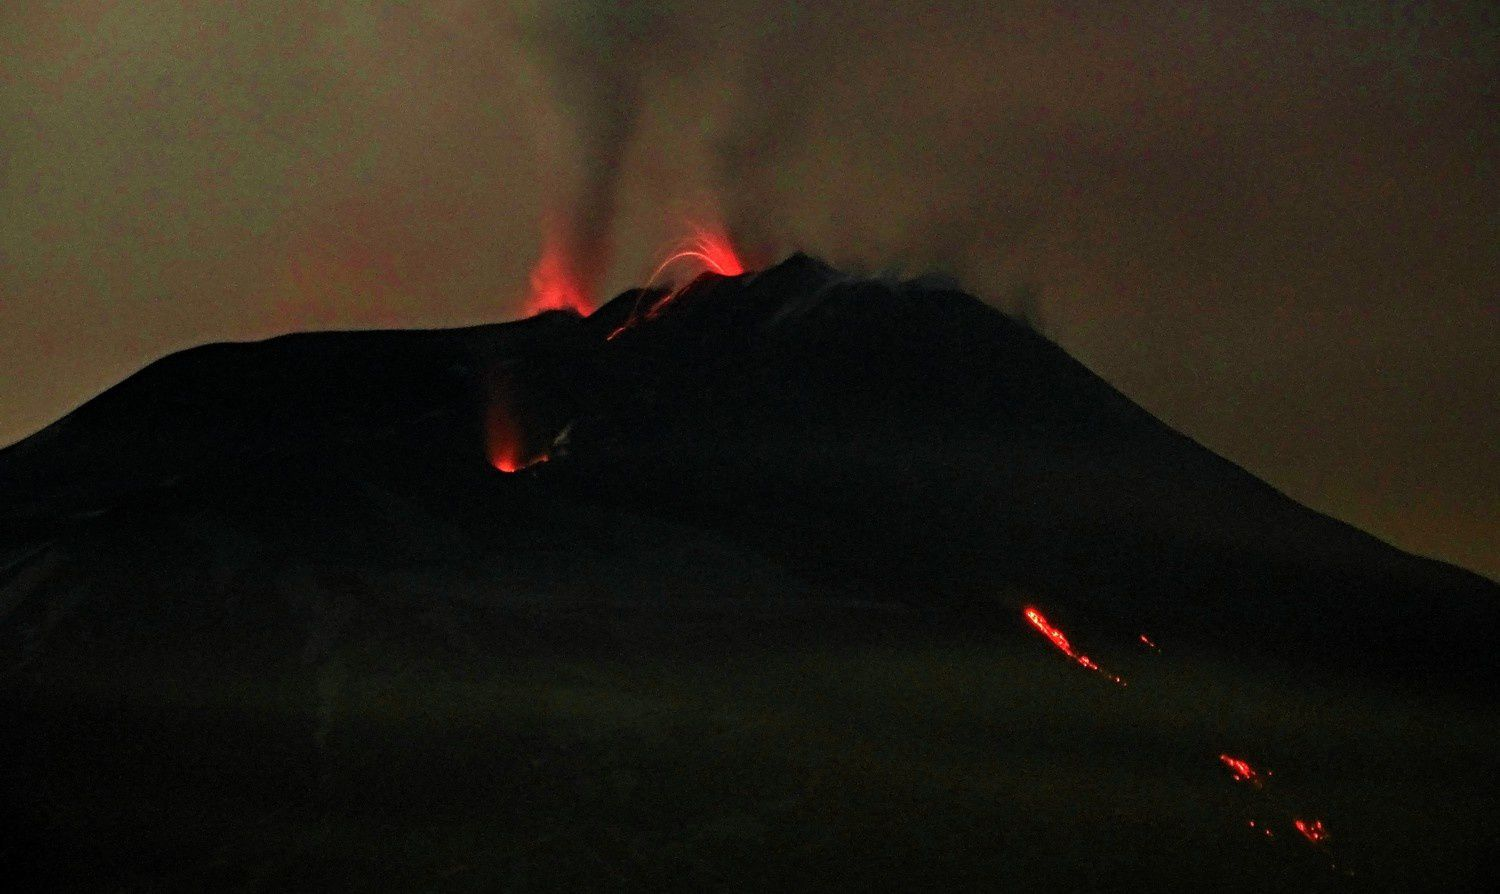 Etna - in the evening of 20.03.2017 - strombolian activity in the SEC (center), incandescence at the Voragine (on the left), and lava flow in the Valle del Bove - photo Boris Behncke